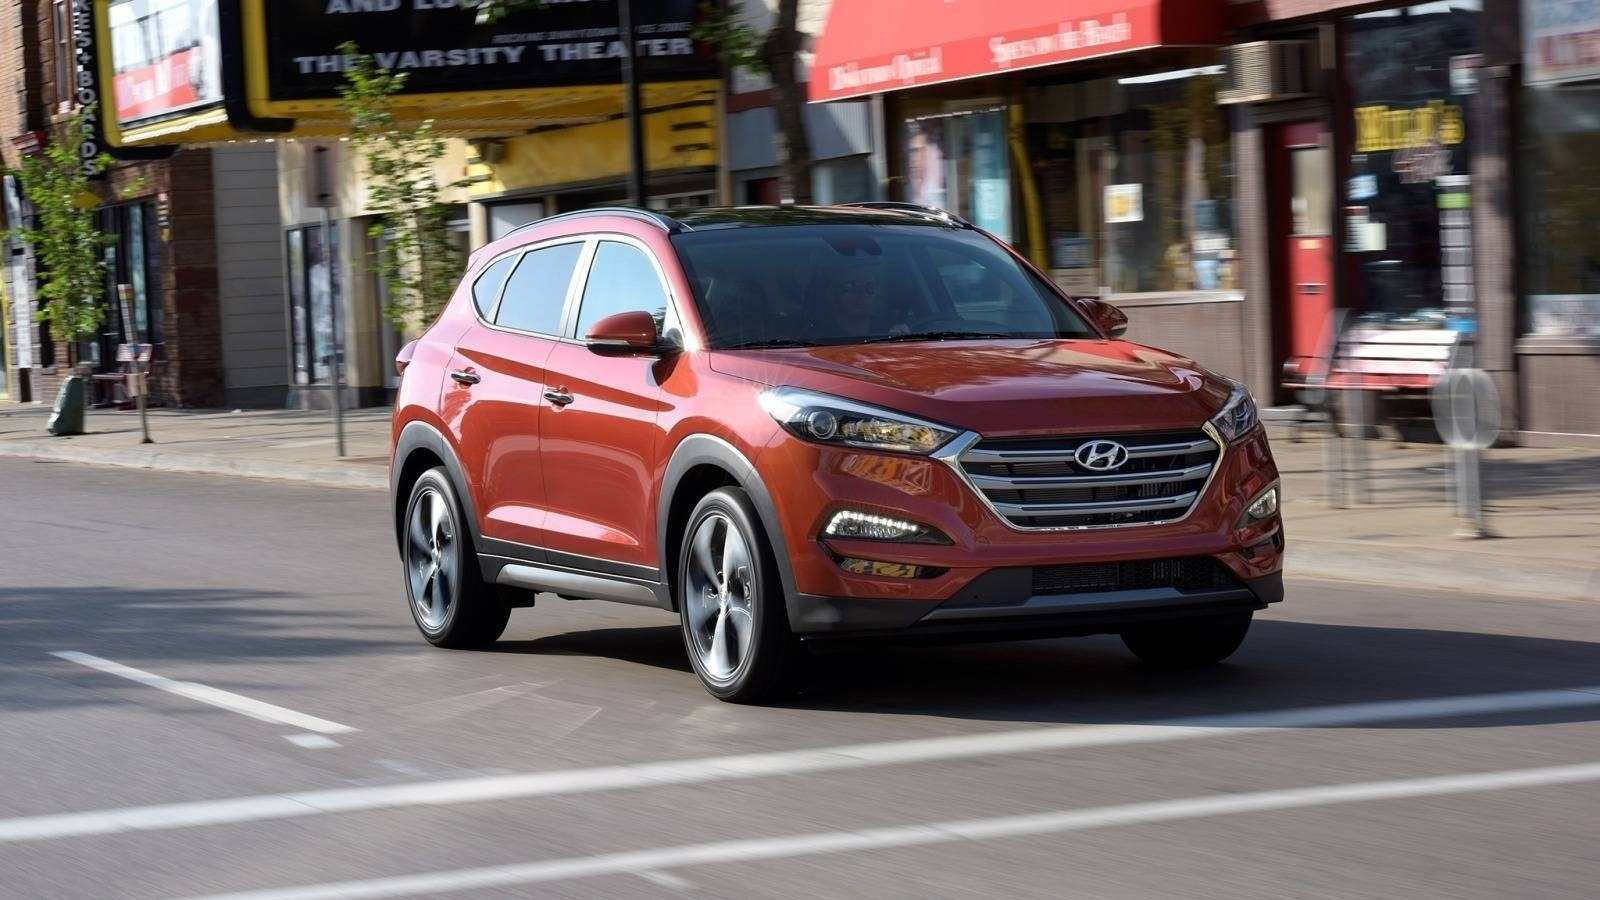 99 Great When Does The 2020 Hyundai Tucson Come Out Configurations for When Does The 2020 Hyundai Tucson Come Out